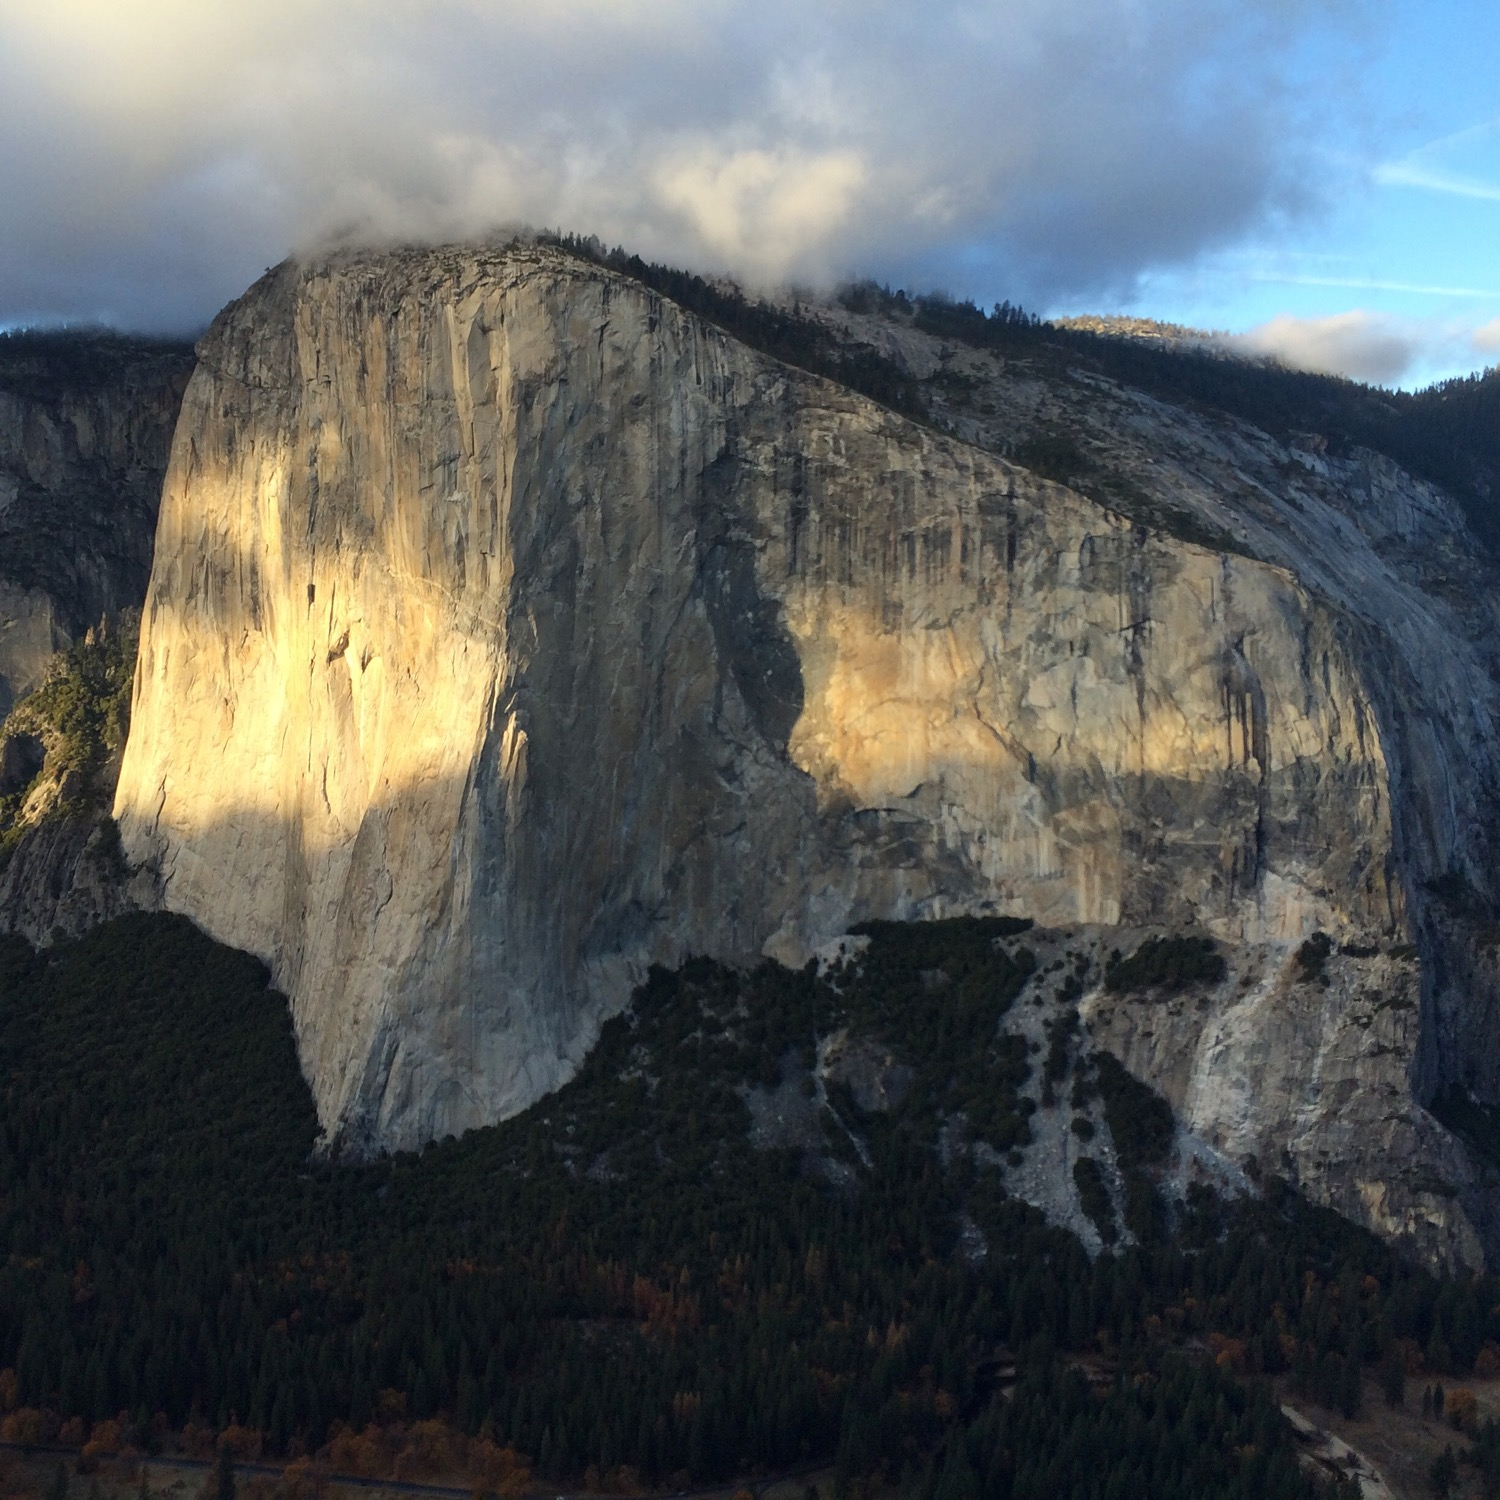 El Capitan at sunset from Lower Cathedral Spire. Yellowstone National Park, California. (Photo by Emily Stifler Wolfe)